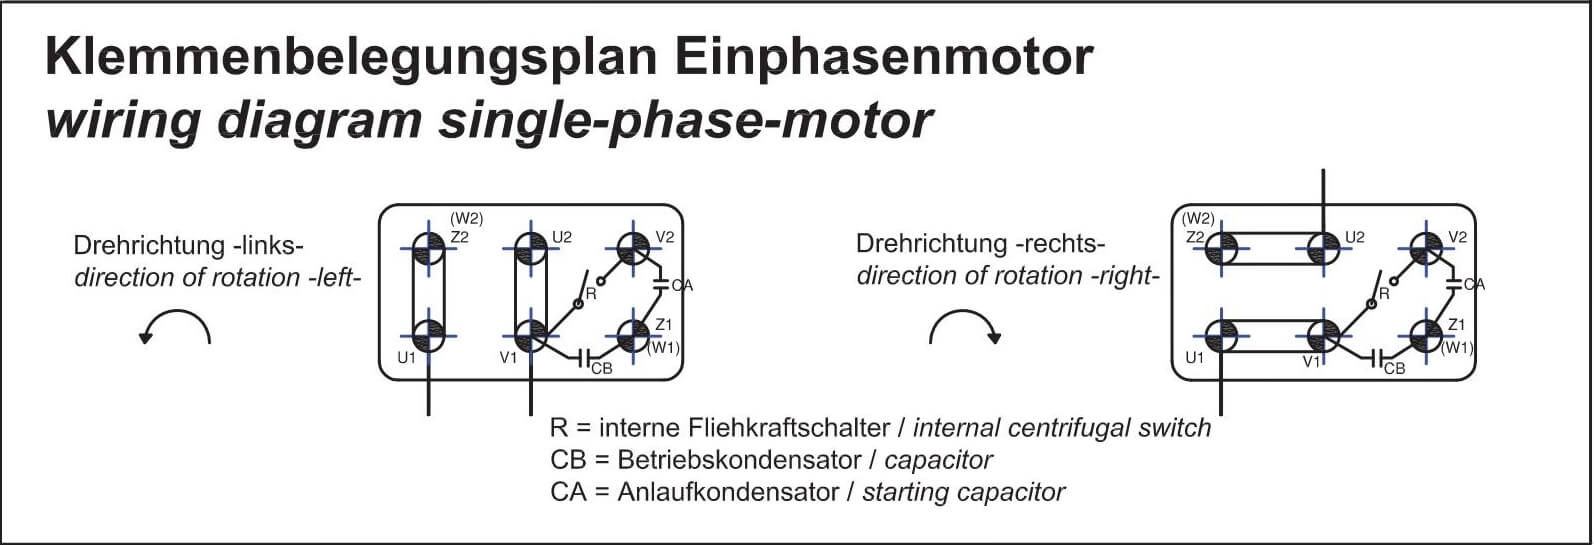 hight resolution of single phase motors are suitable for both directions of rotation see connection diagram anschlu plan wechselstrommotor